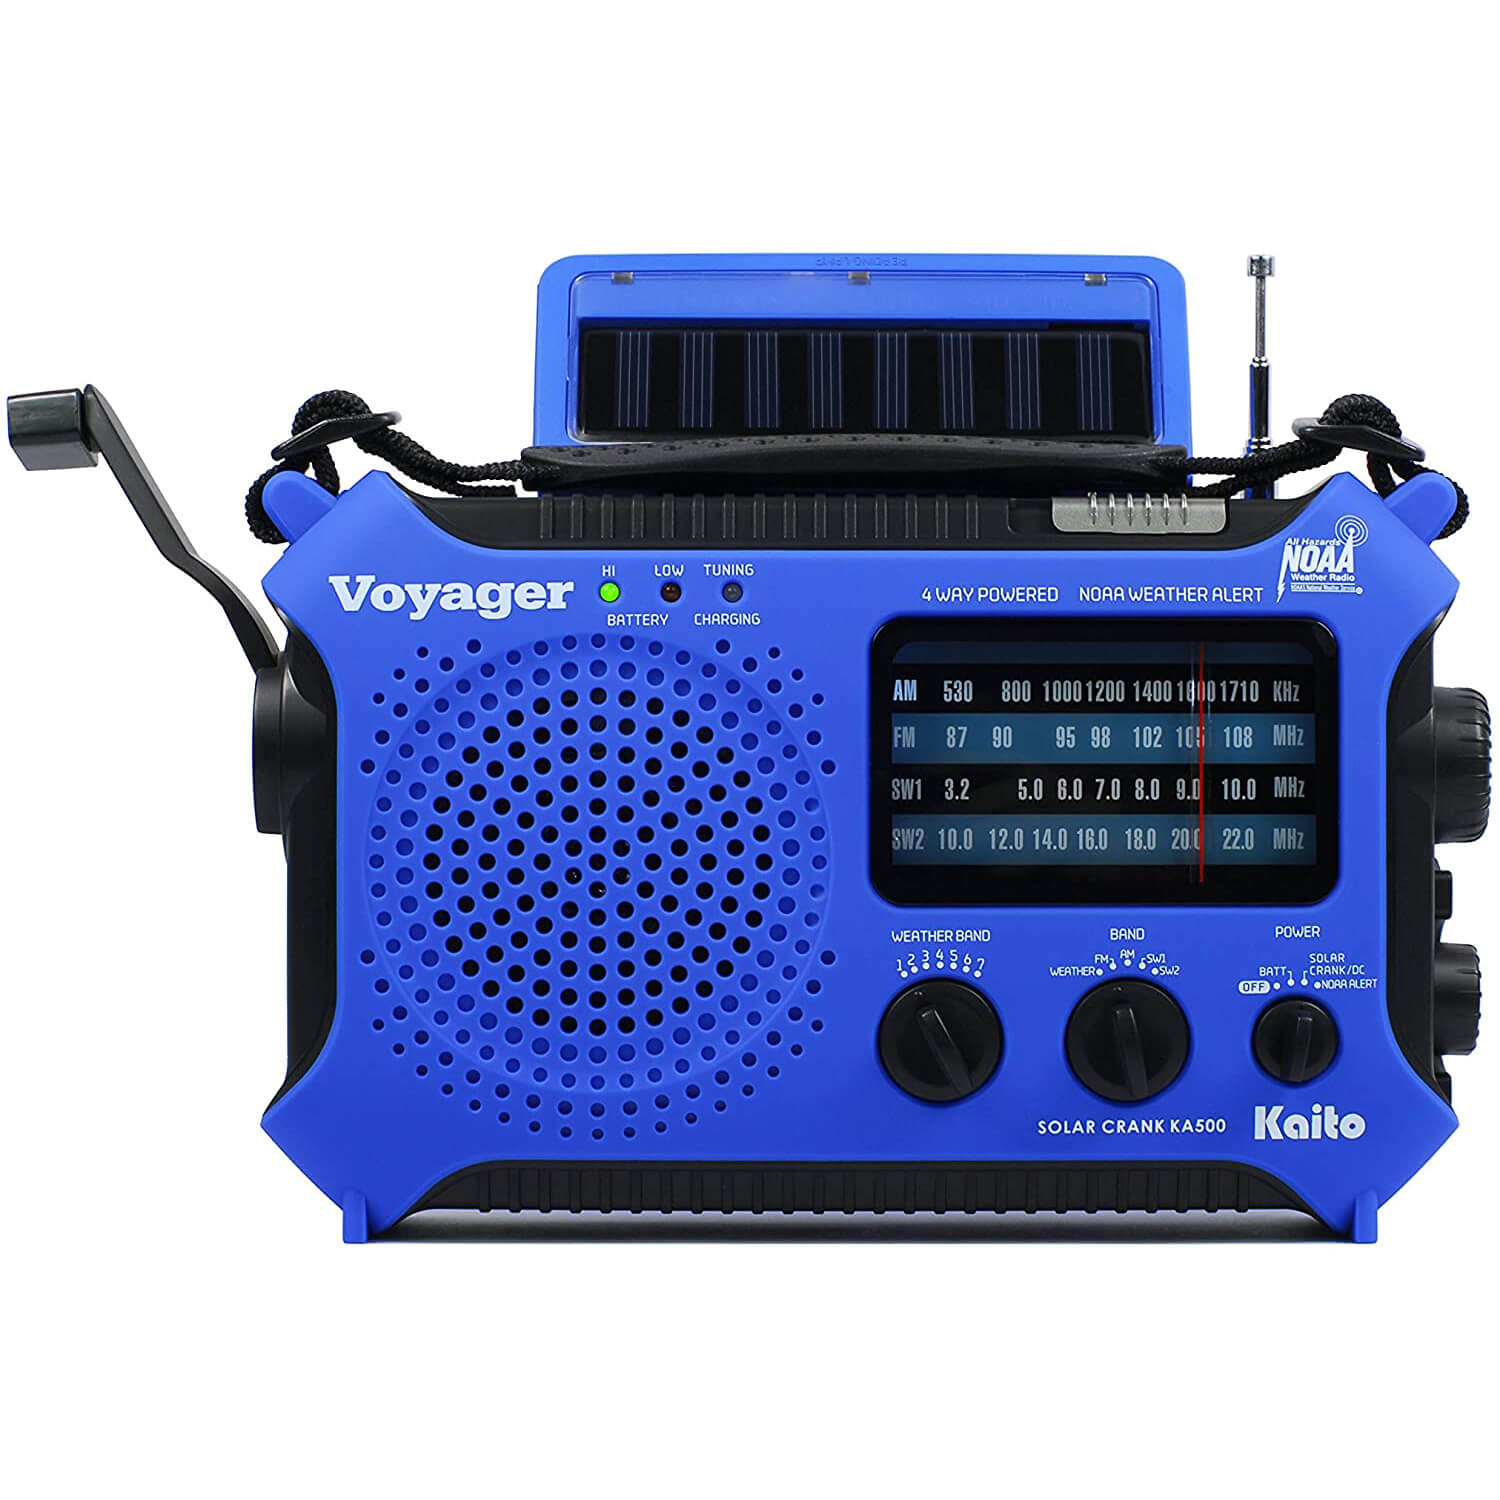 Kaito KA500BU 5-Way Powered Emergency AM/FM/SW Weather Alert Radio